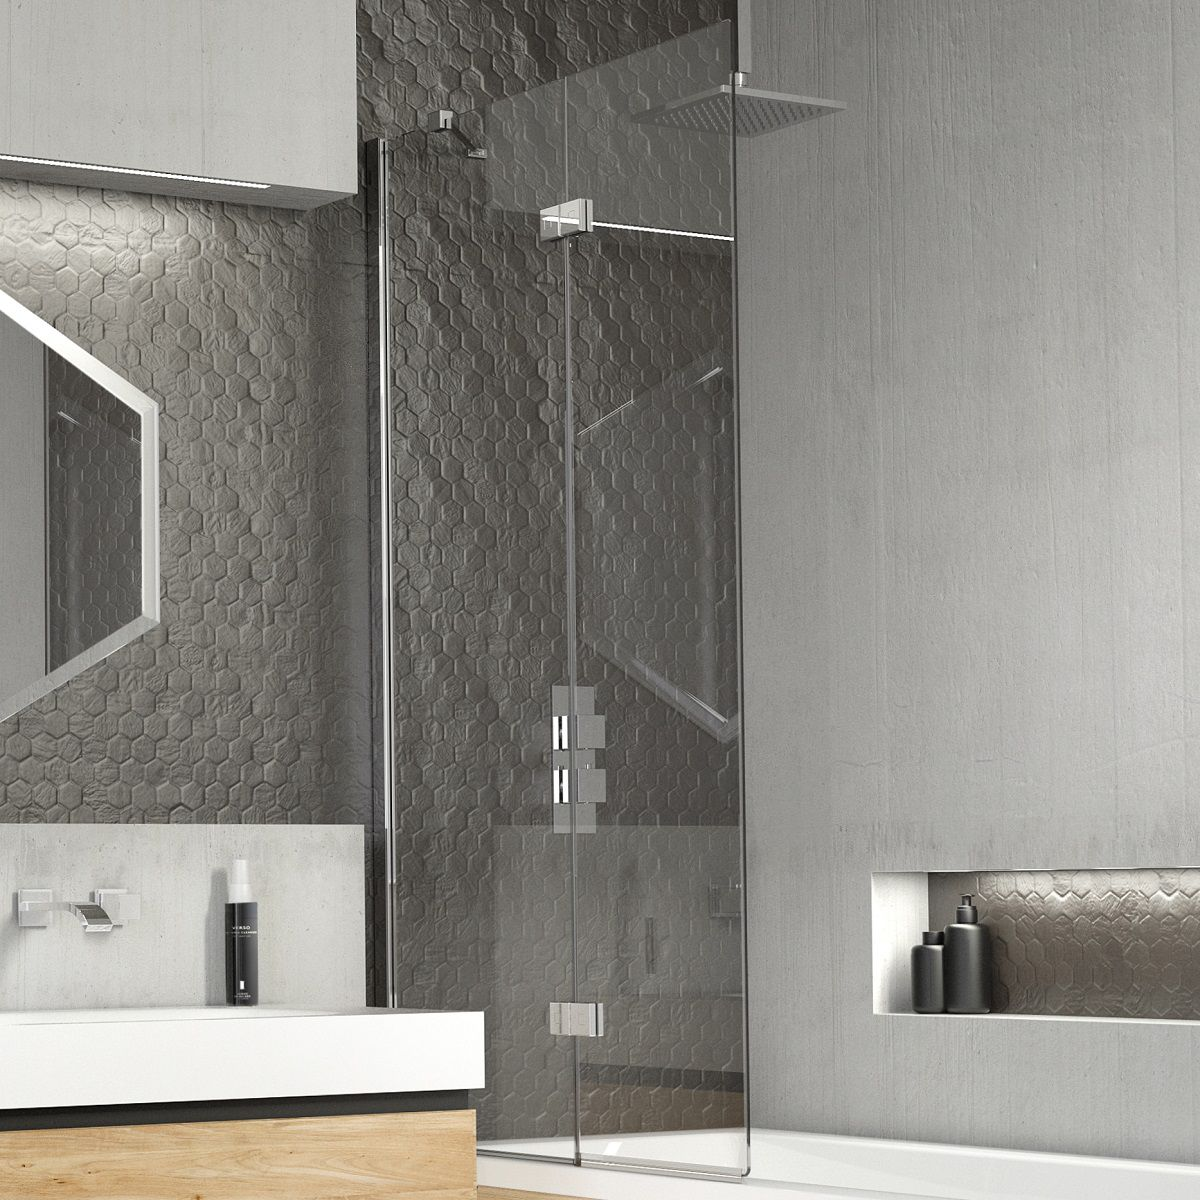 Kudos Inspire 2 Panel in Fold Bath Screen